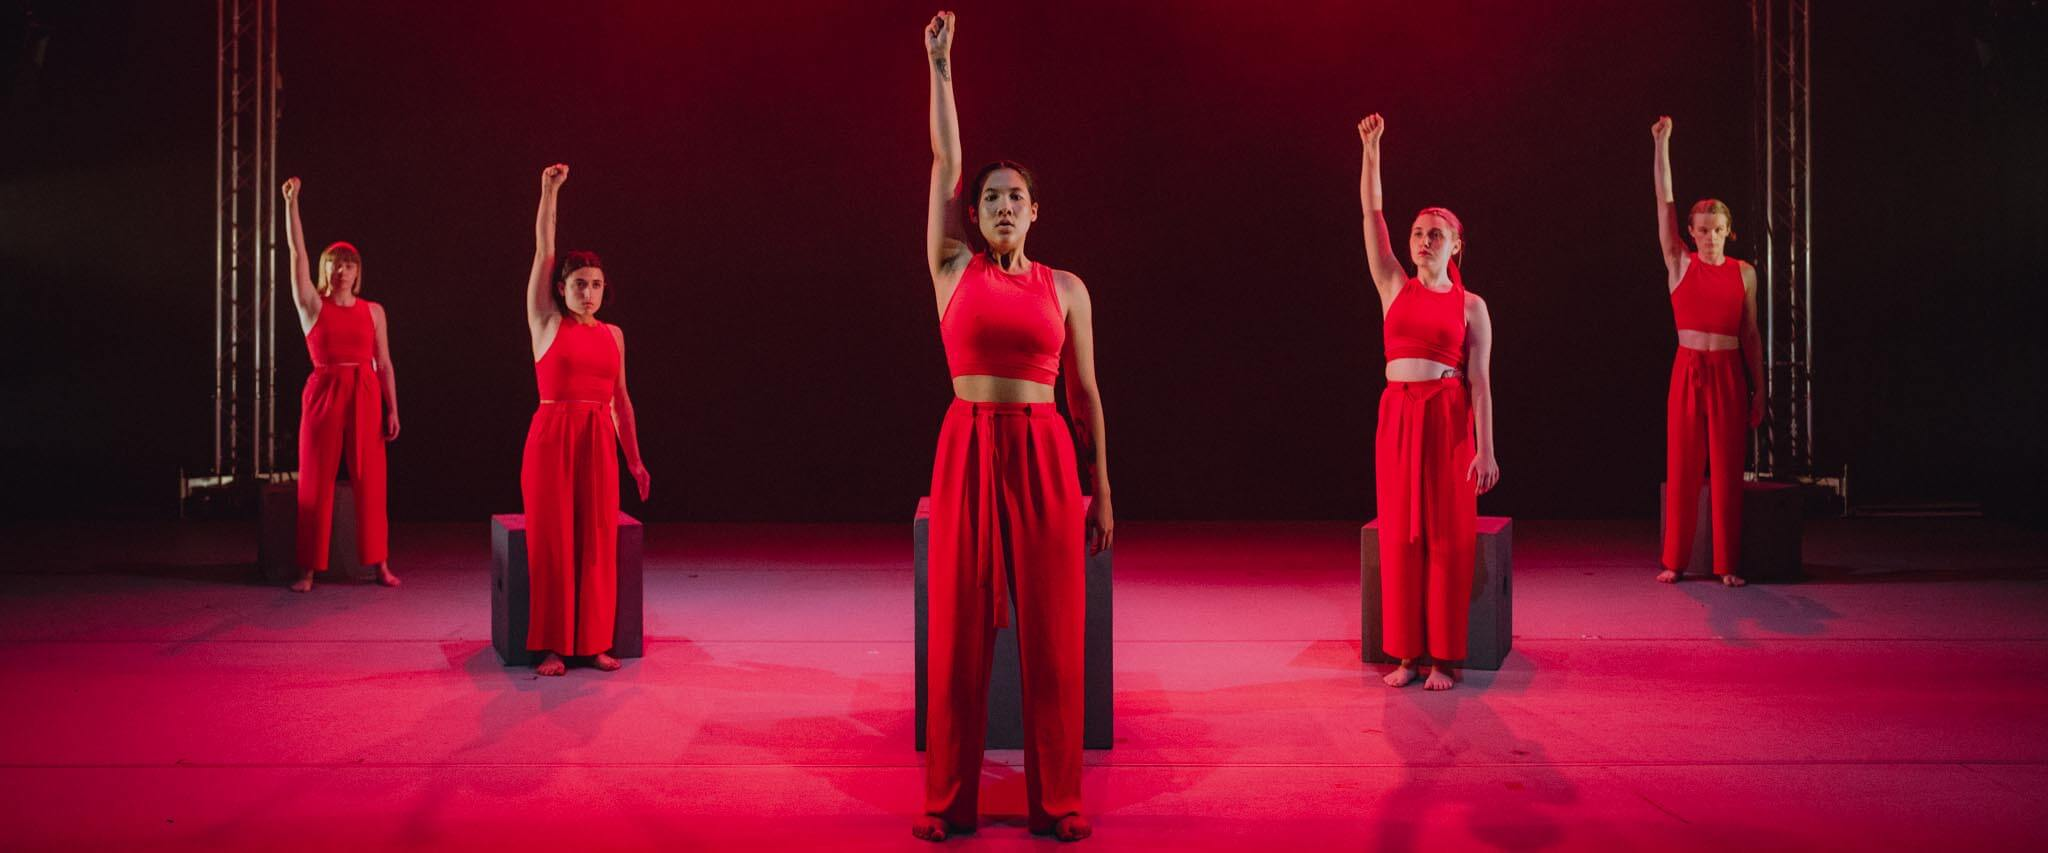 BA (Hons) Contemporary Performance Practice Image